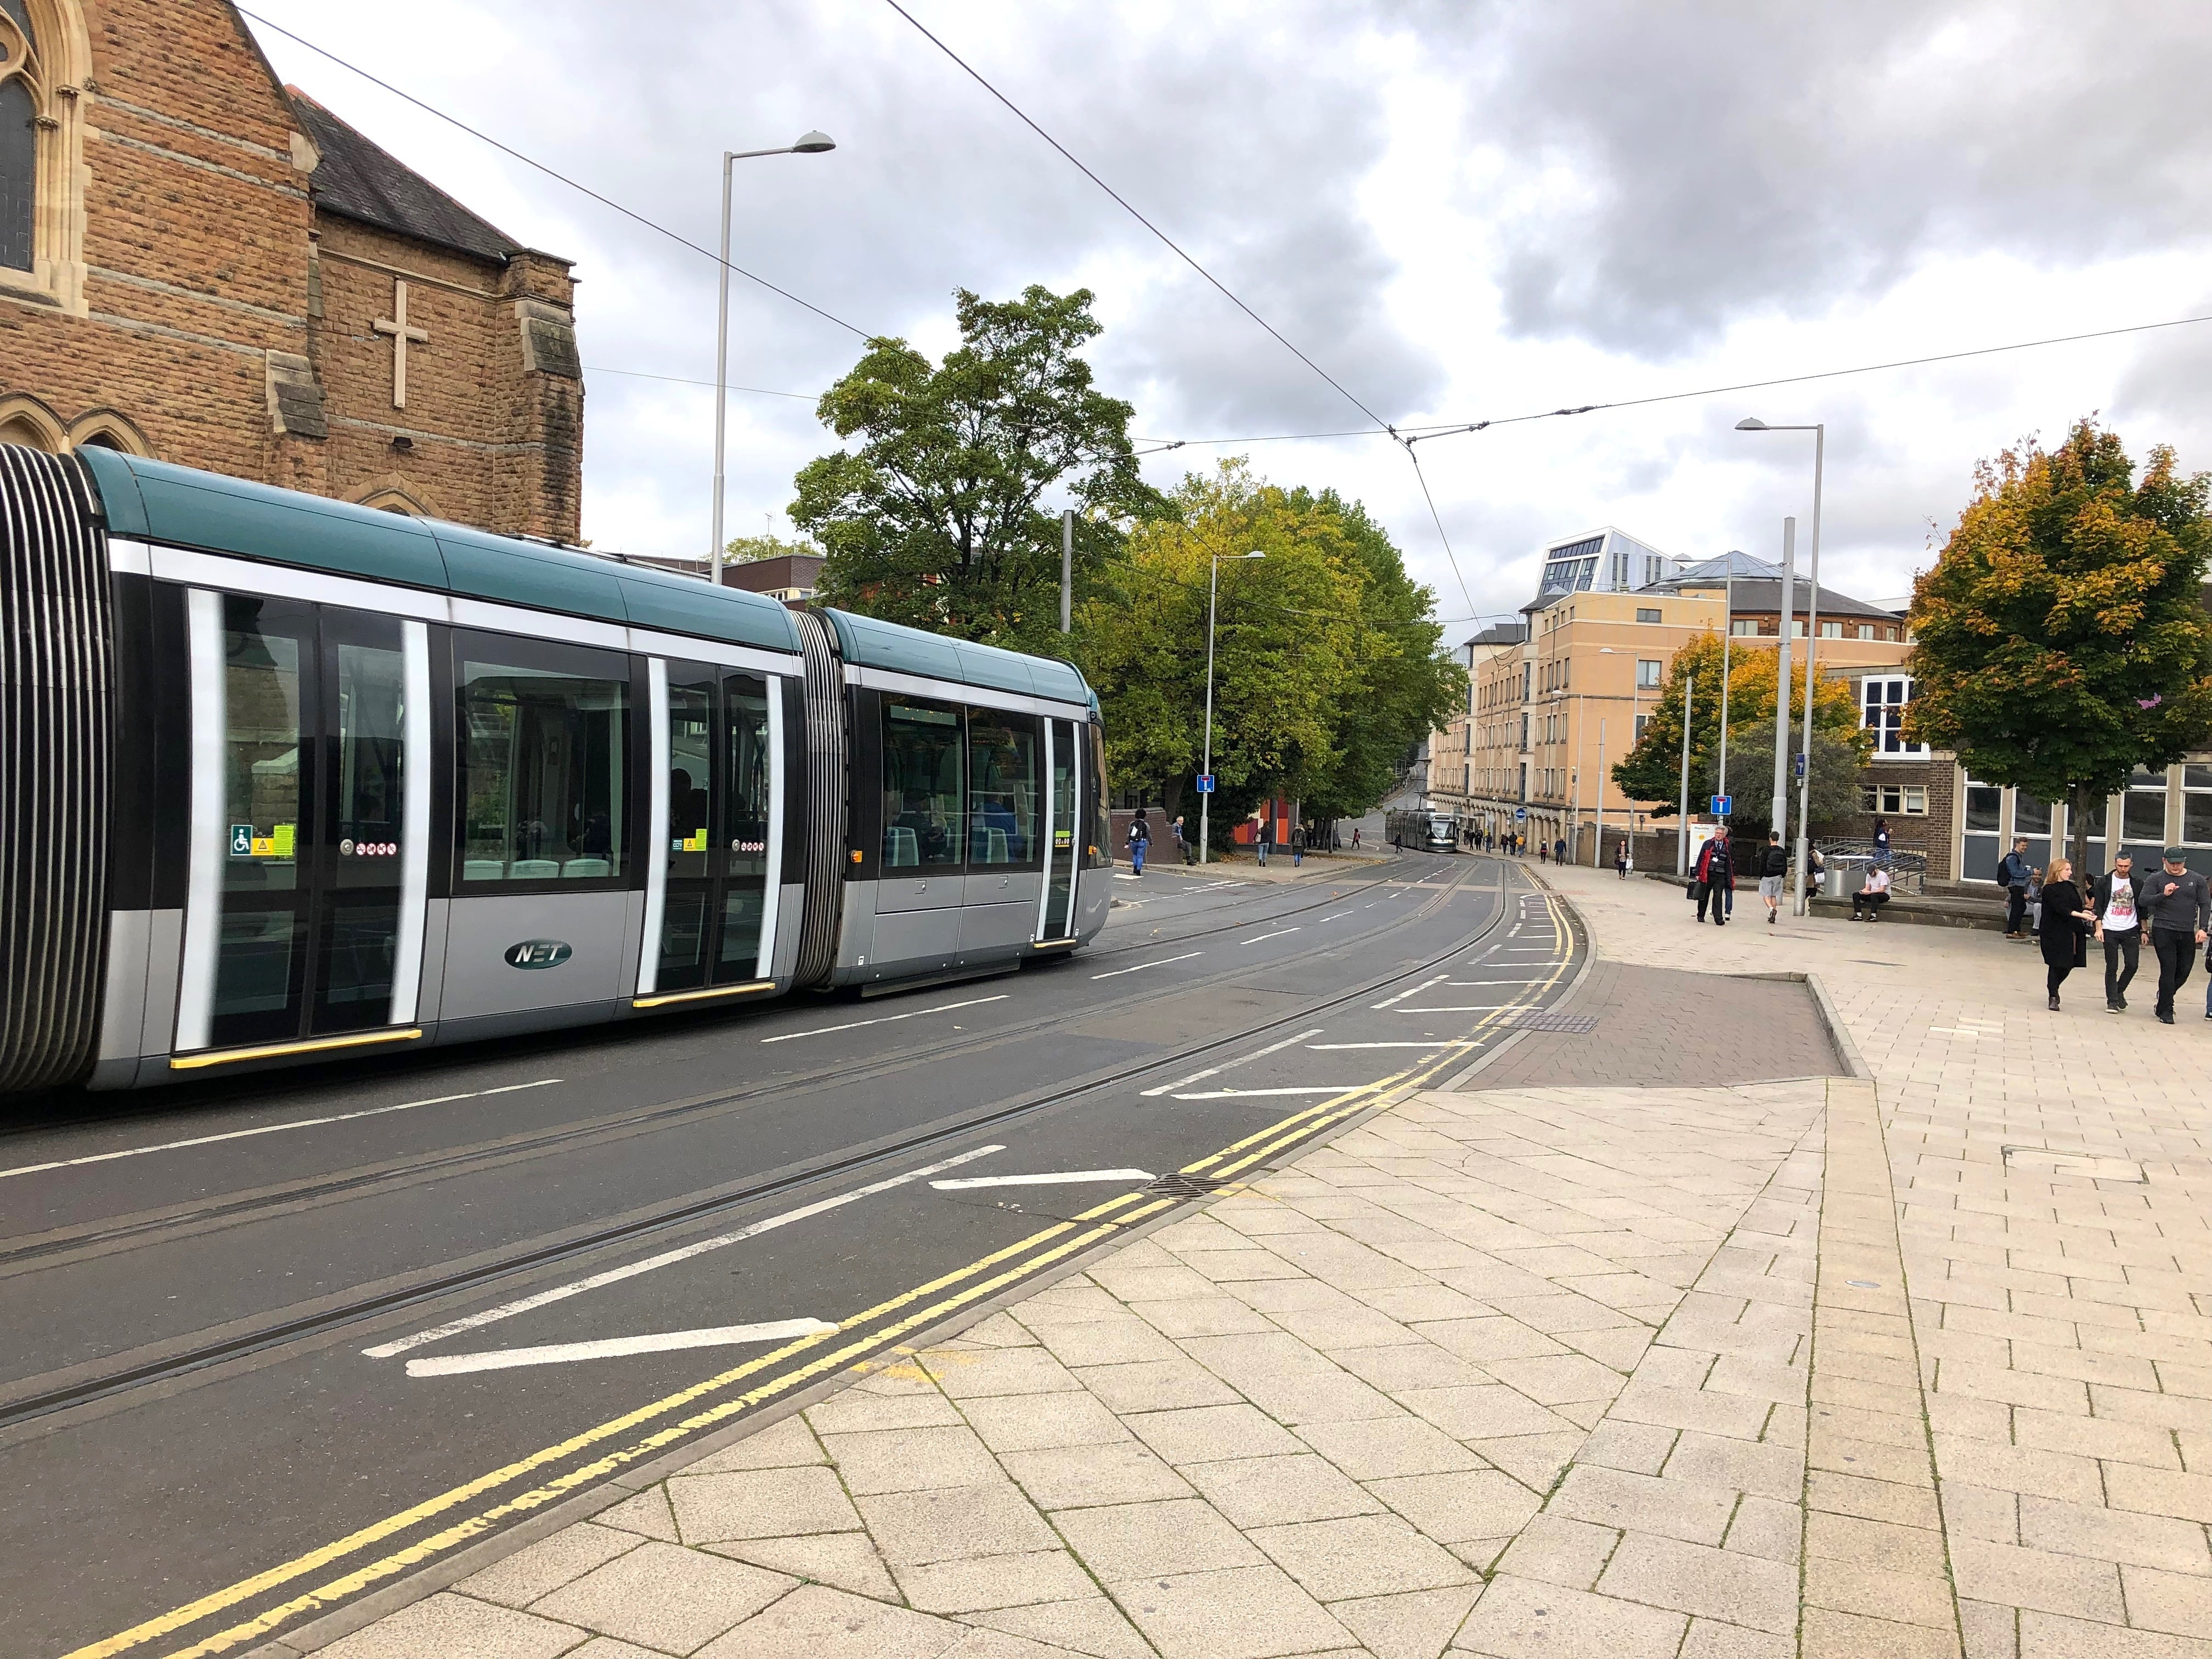 A NET tram at Nottingham Trent University - single student fares rise for £1.00 to £1.50 on October 1, 2018 Picture: © westbridgfordwire.com